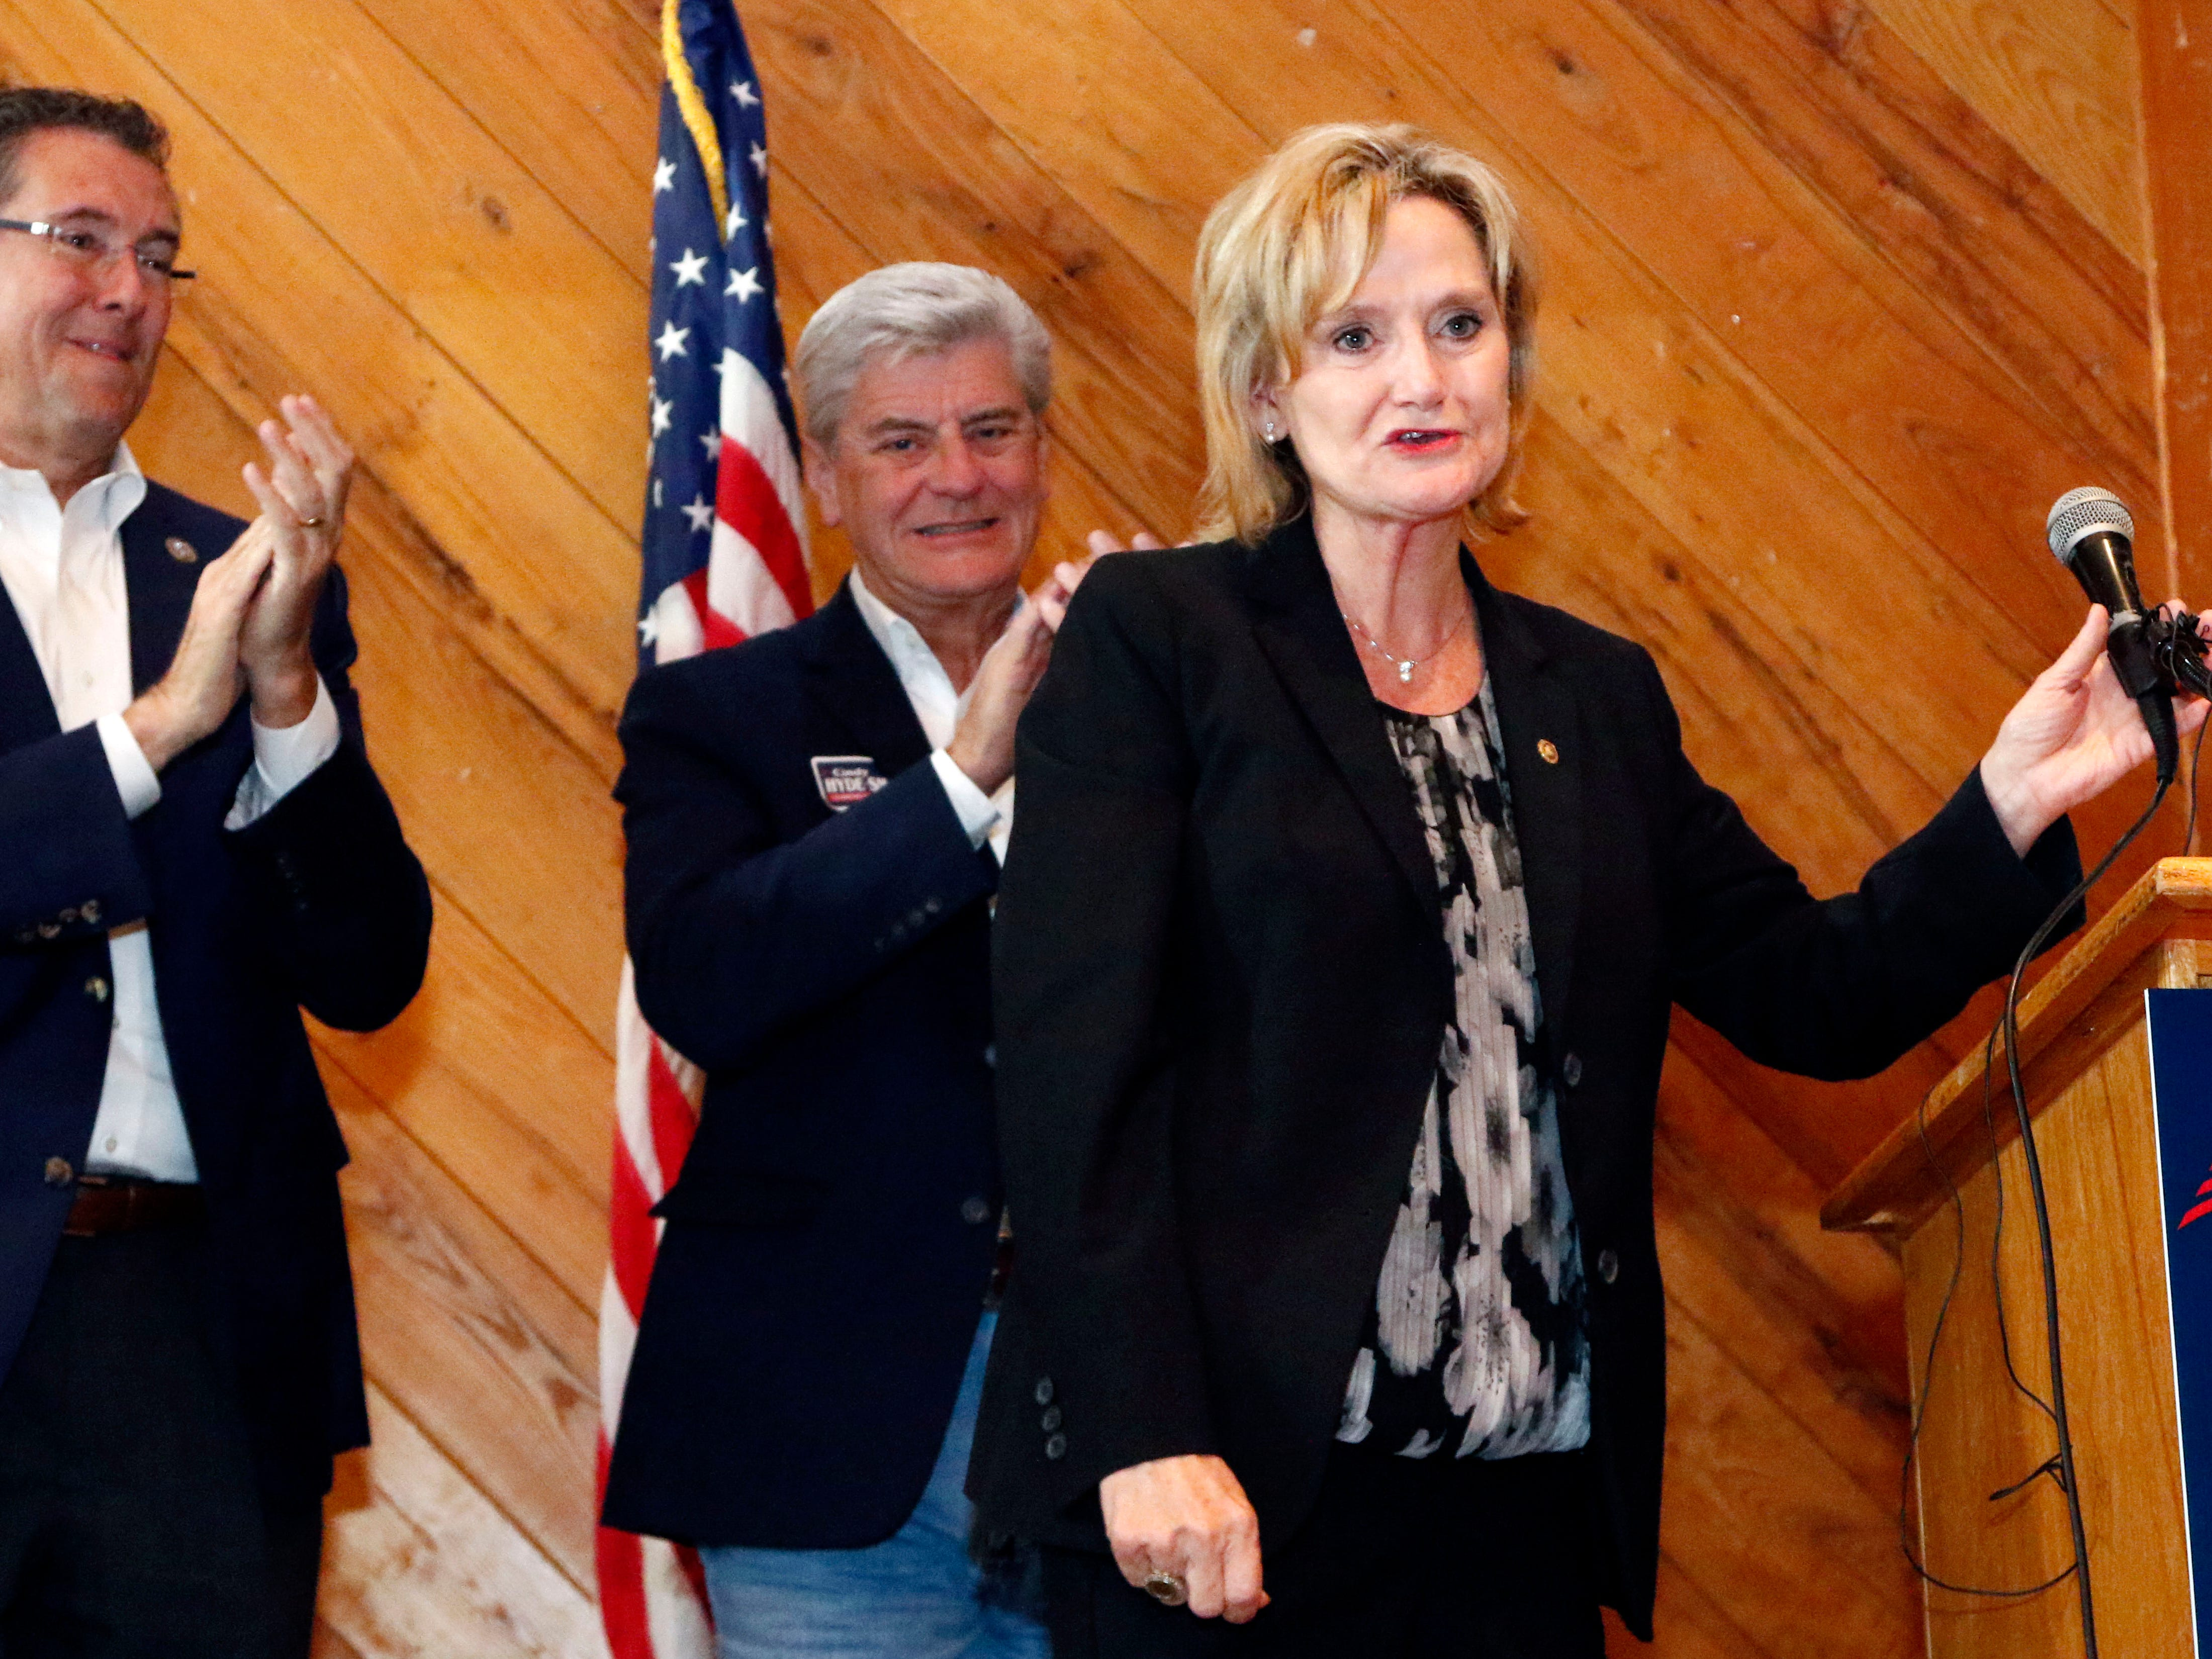 U.S. Rep. Gregg Harper, R-Miss., left, and Gov. Phil Bryant, applaud U.S. Sen. Cindy Hyde-Smith, R-Miss., right, after she spoke to a gathering of supporters in Jackson, Miss., Monday, Nov. 5, 2018.